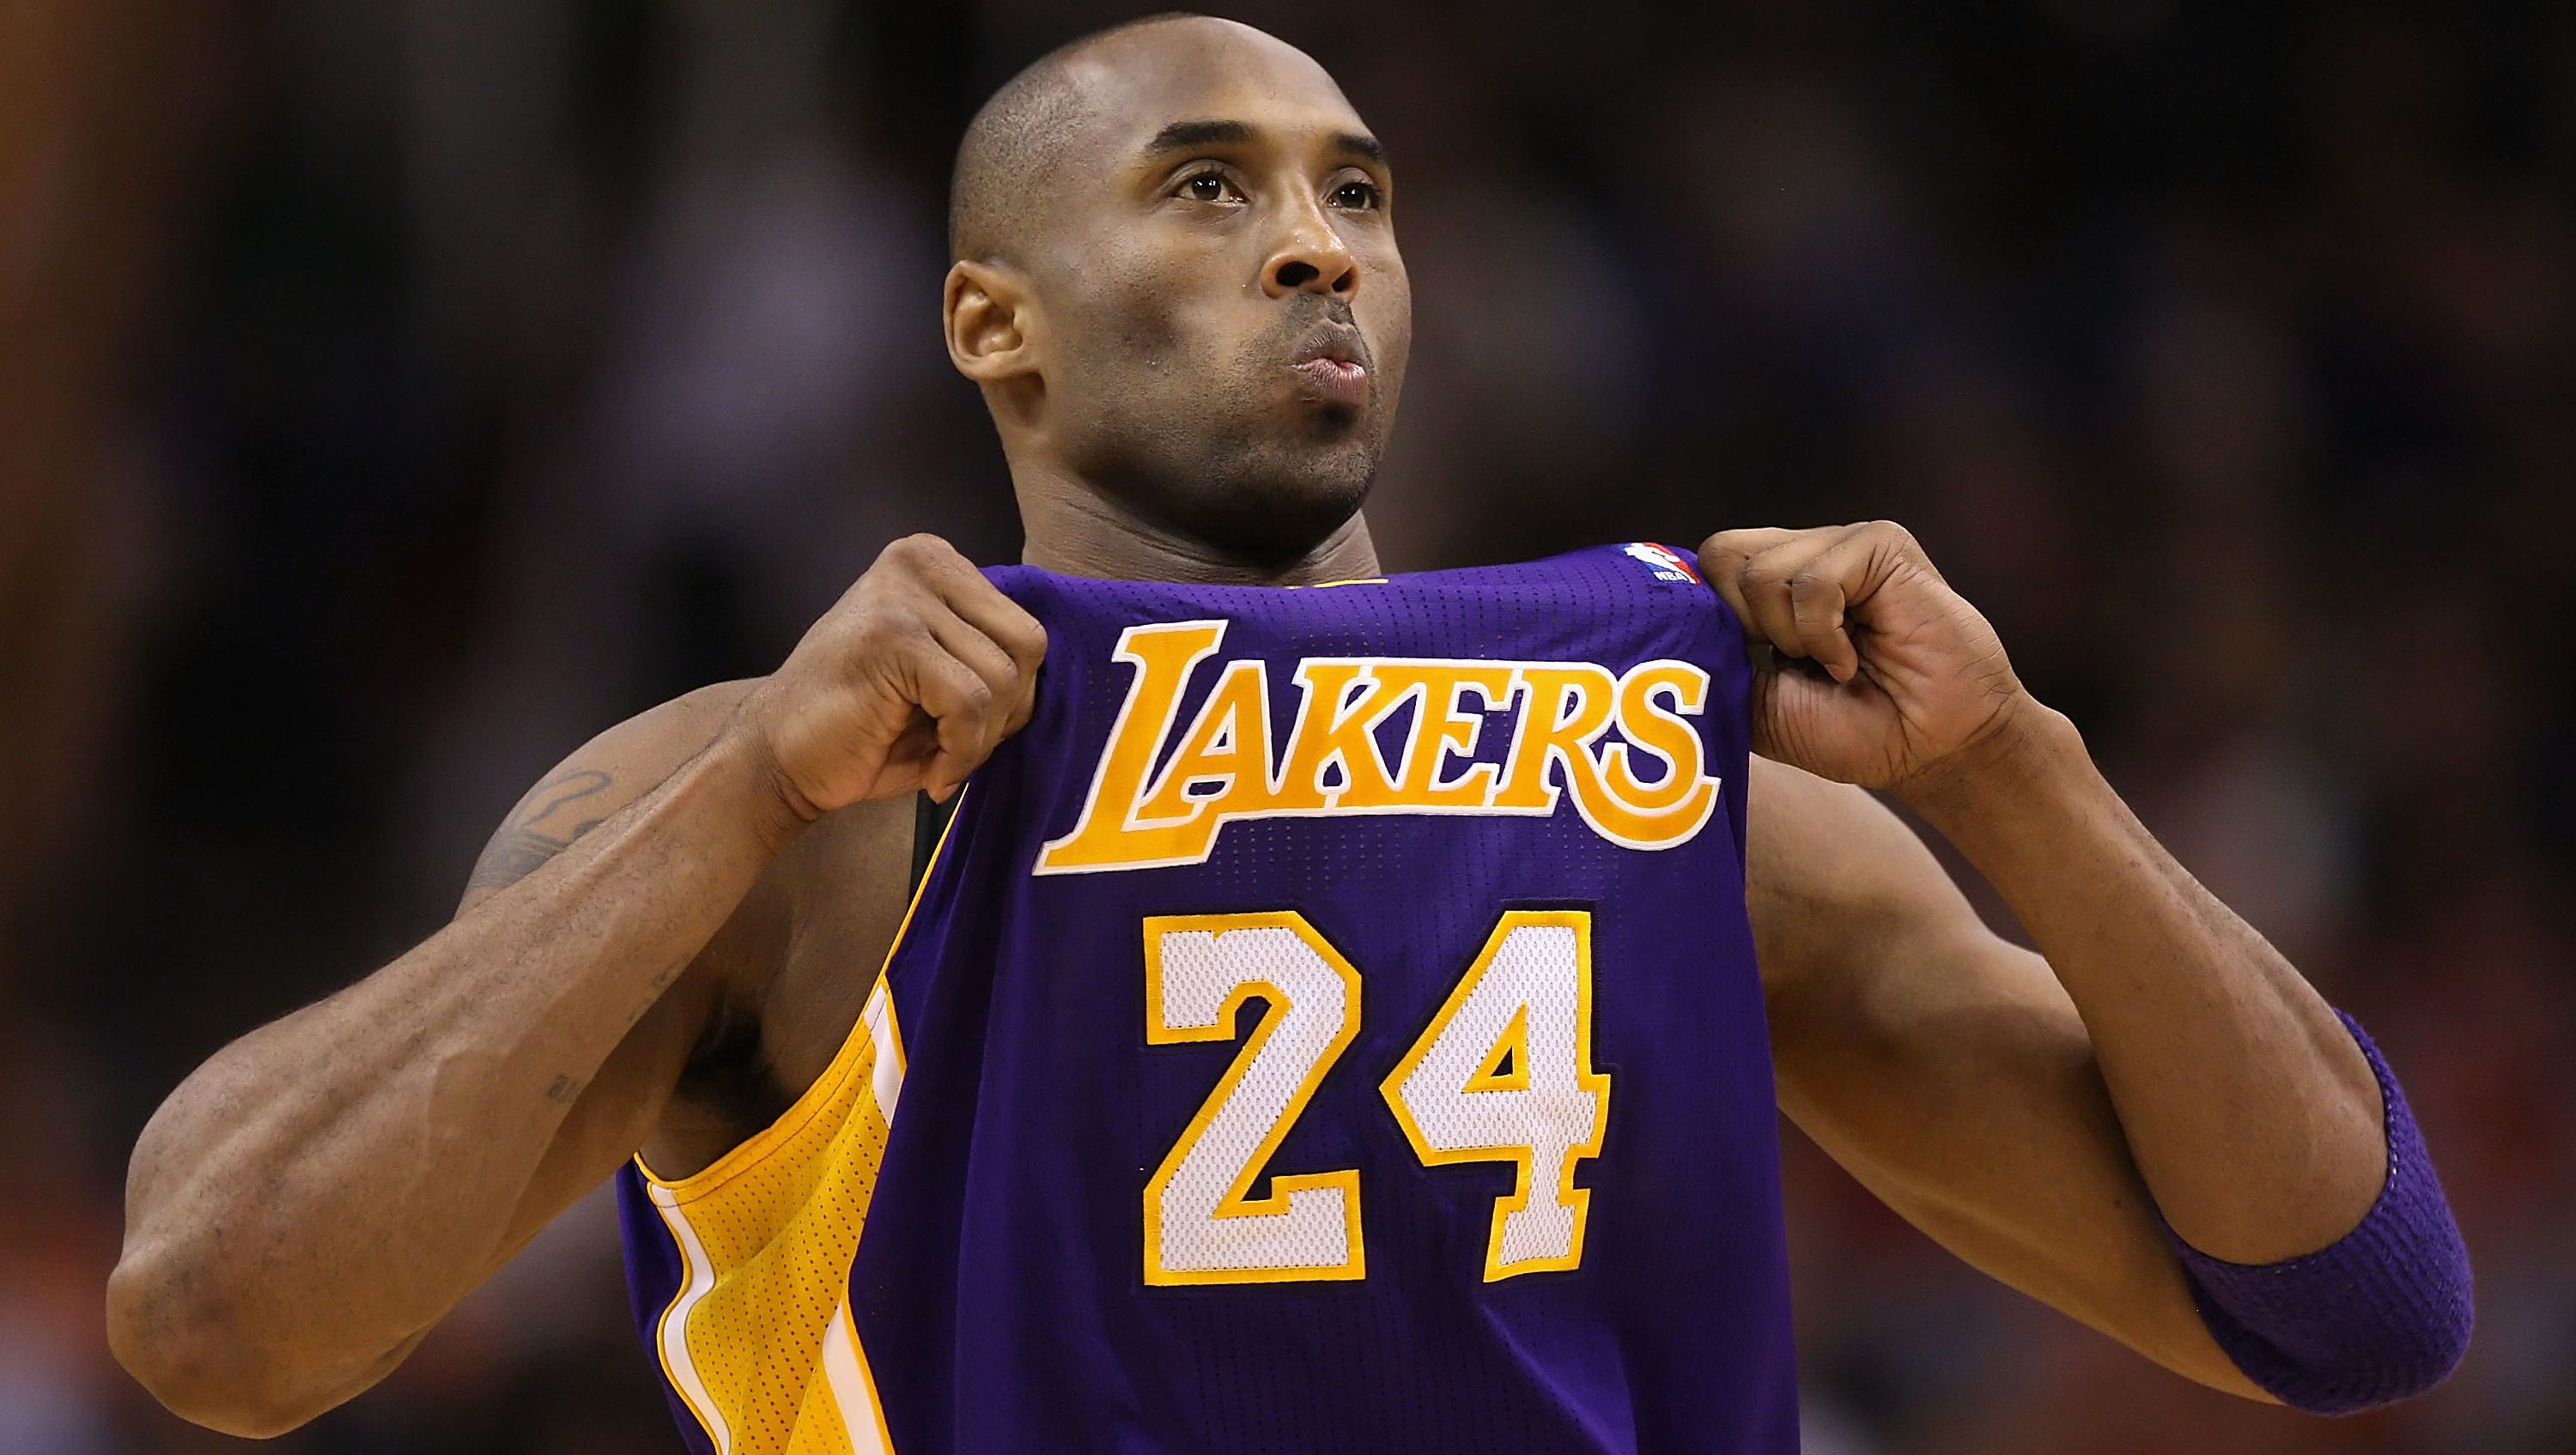 Lakers to retire Kobe Bryant's 2 jersey numbers